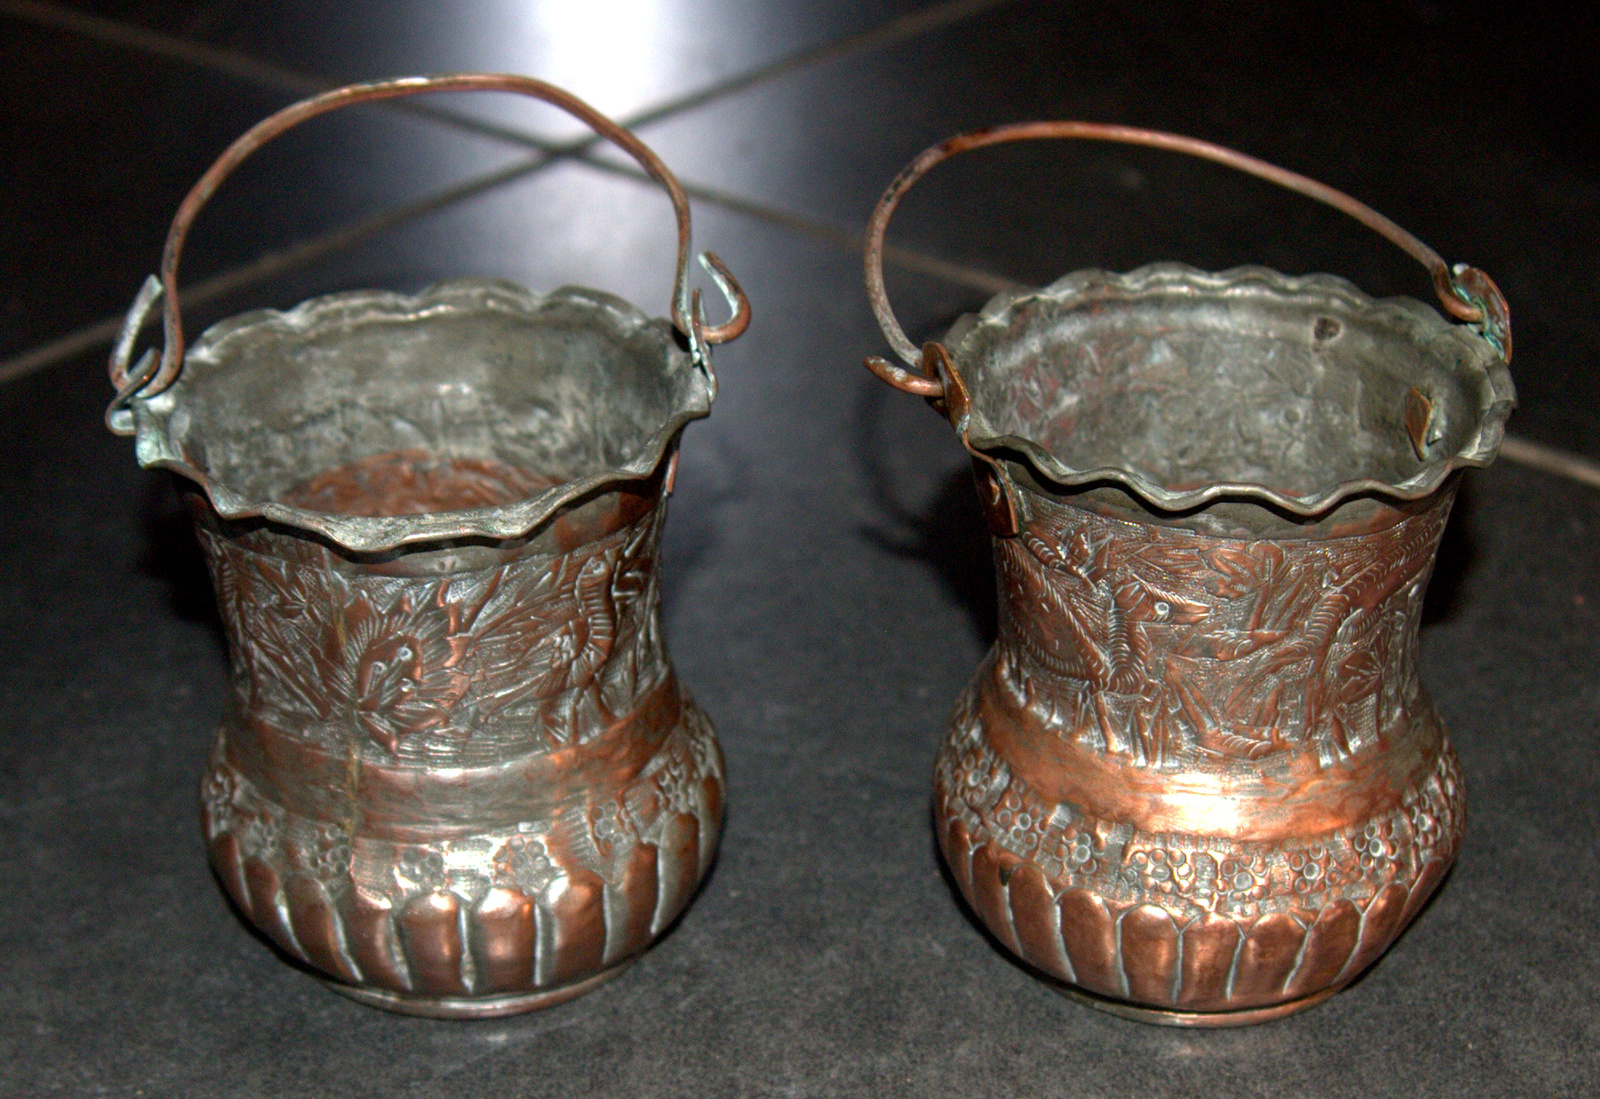 2 Antique Persian Copper Cups Jugs Hand Etched Traditional Persepolis Embossed